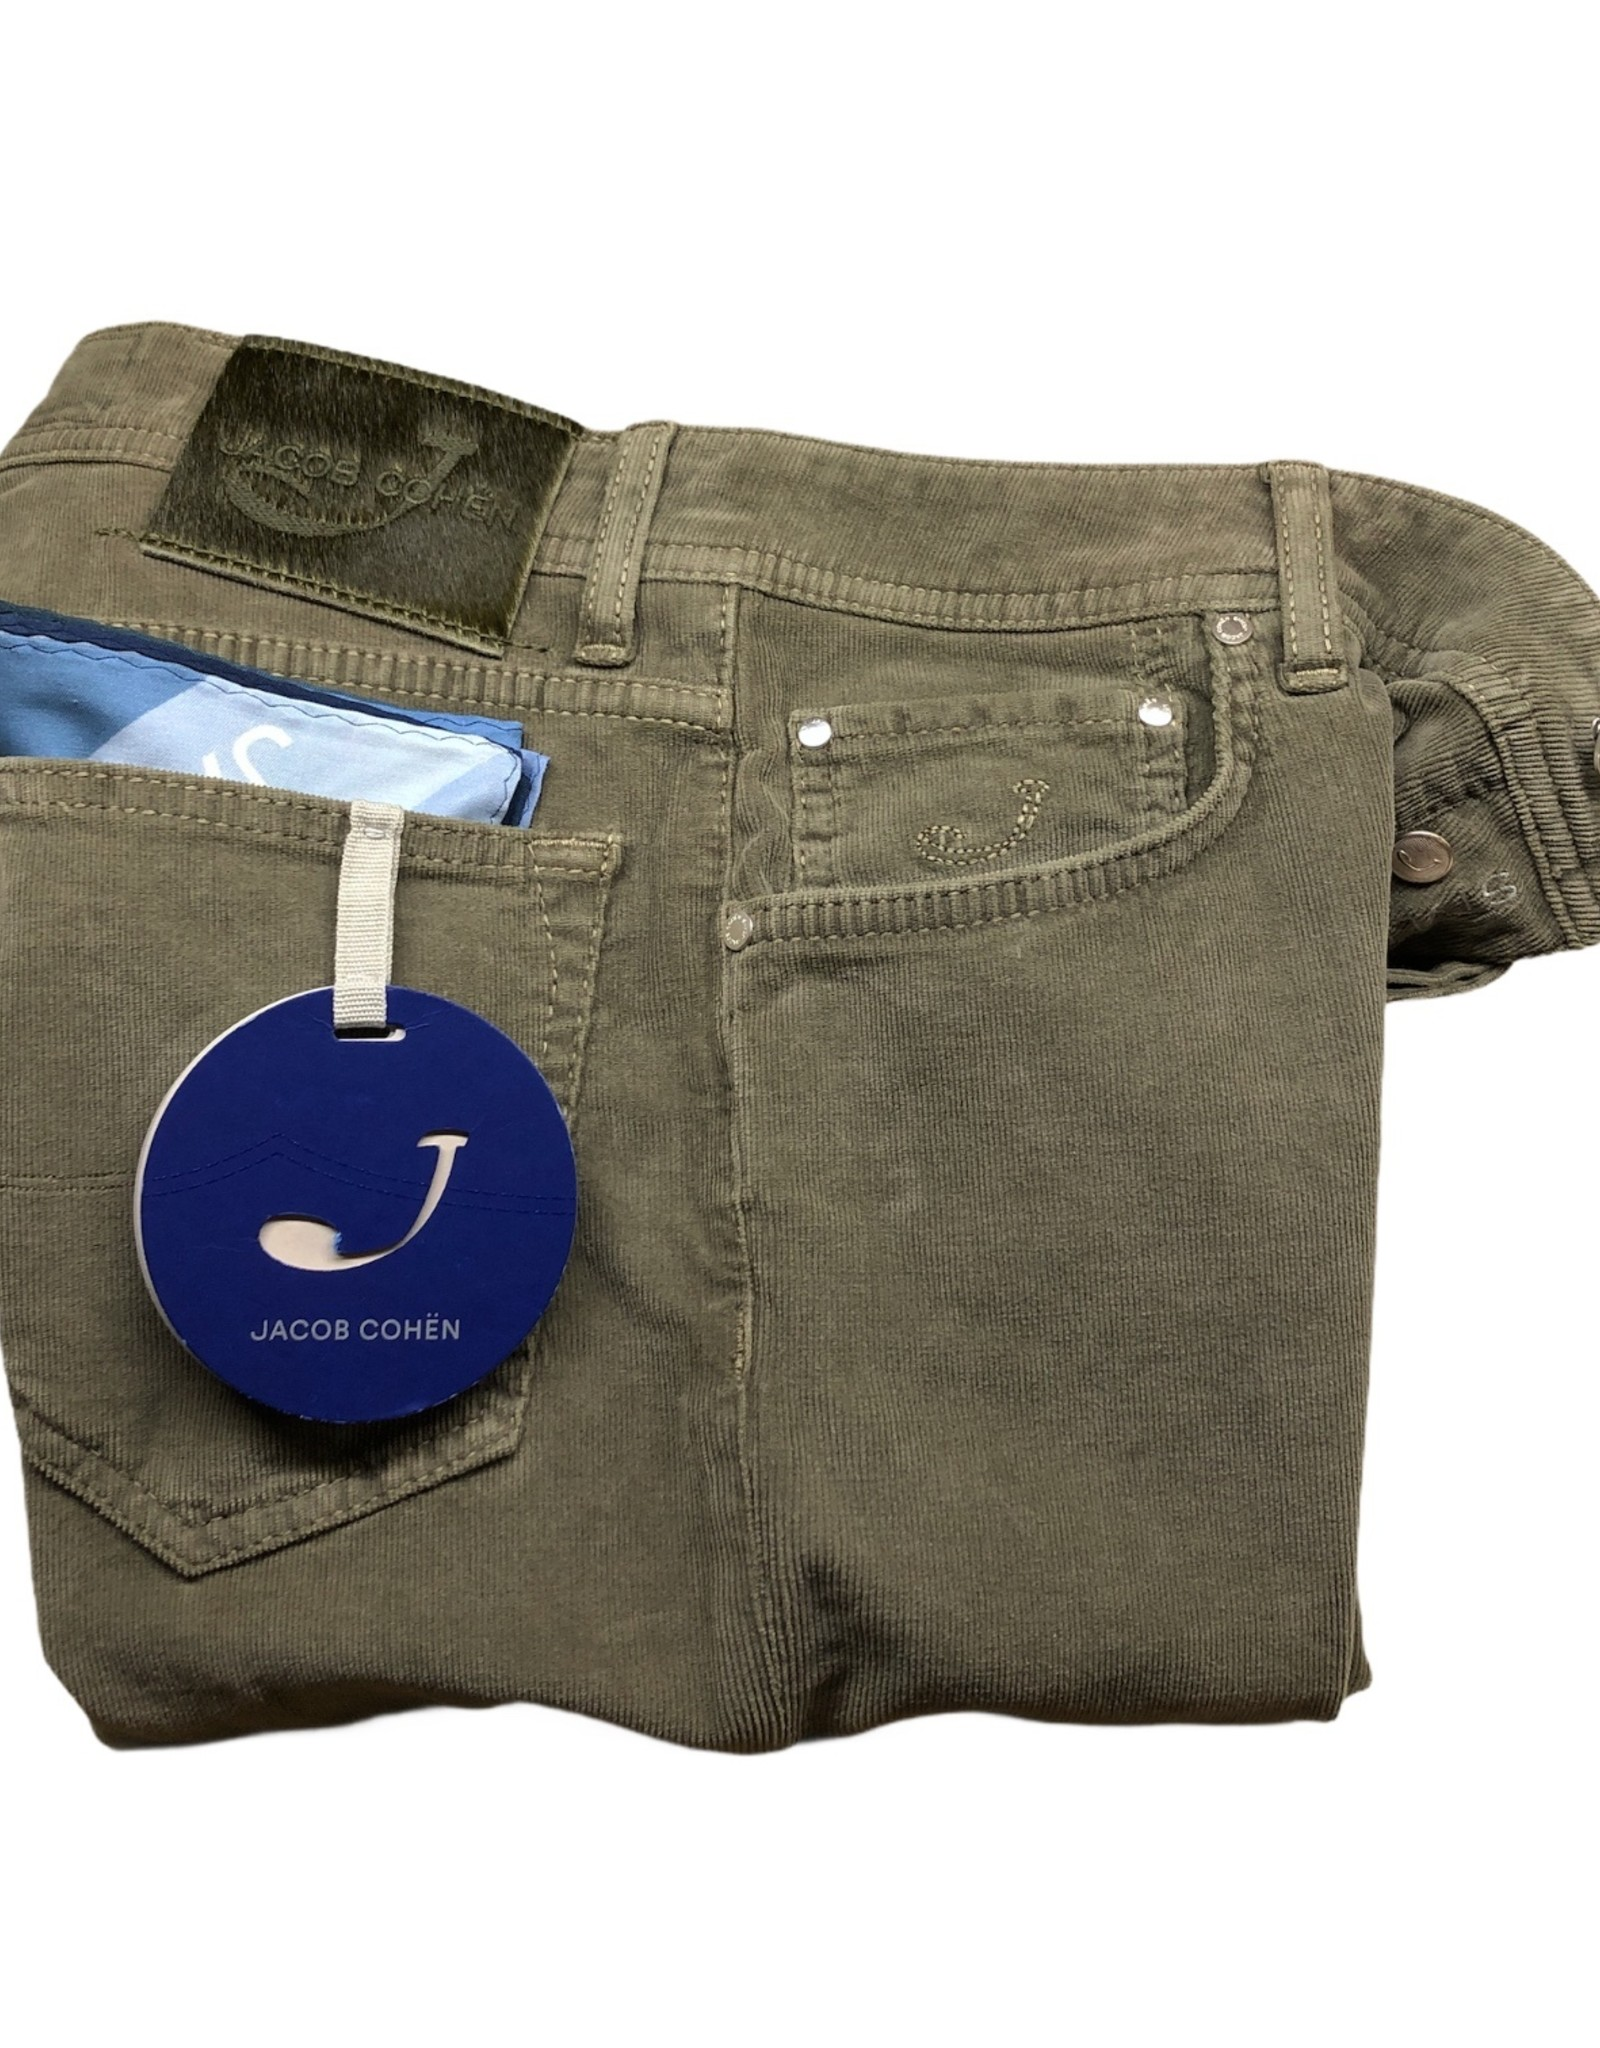 JACOB COHEN JACOB COHEN Jeans J622 SLIM COMF 8805